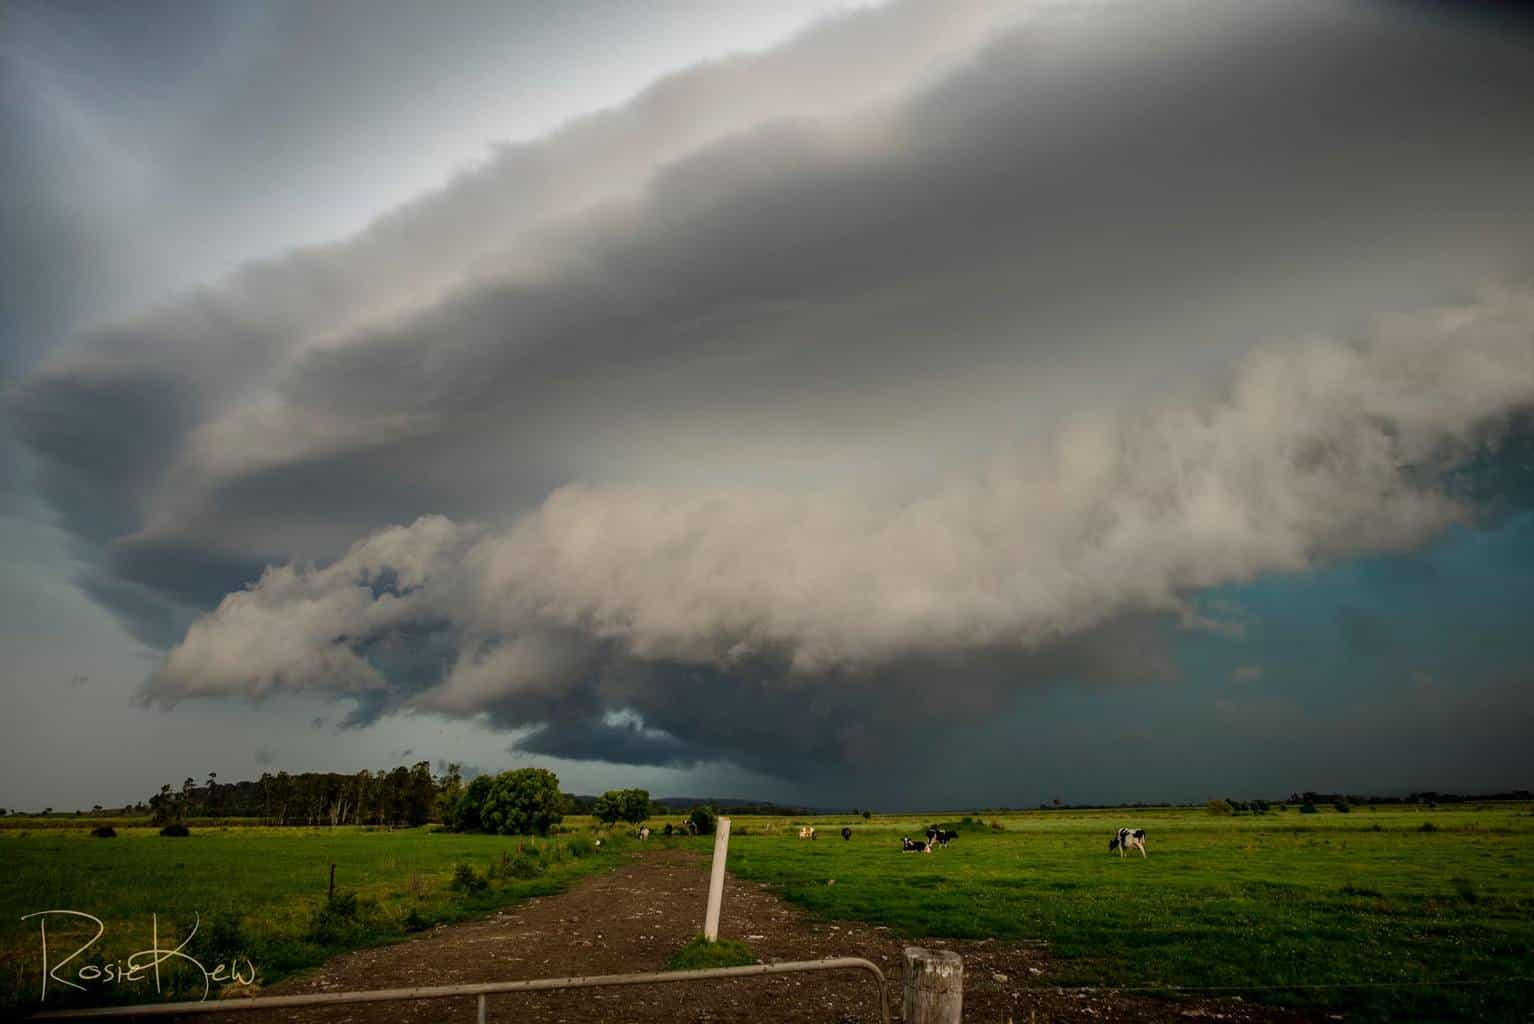 Very photogenic severe warned storm came across our area this afternoon. I had waited all day in very hot sticky temps and was well rewarded as this beast rode the upper trough. This was my last shot before bailing and heading home. Near Coraki Northern NSW Australia.